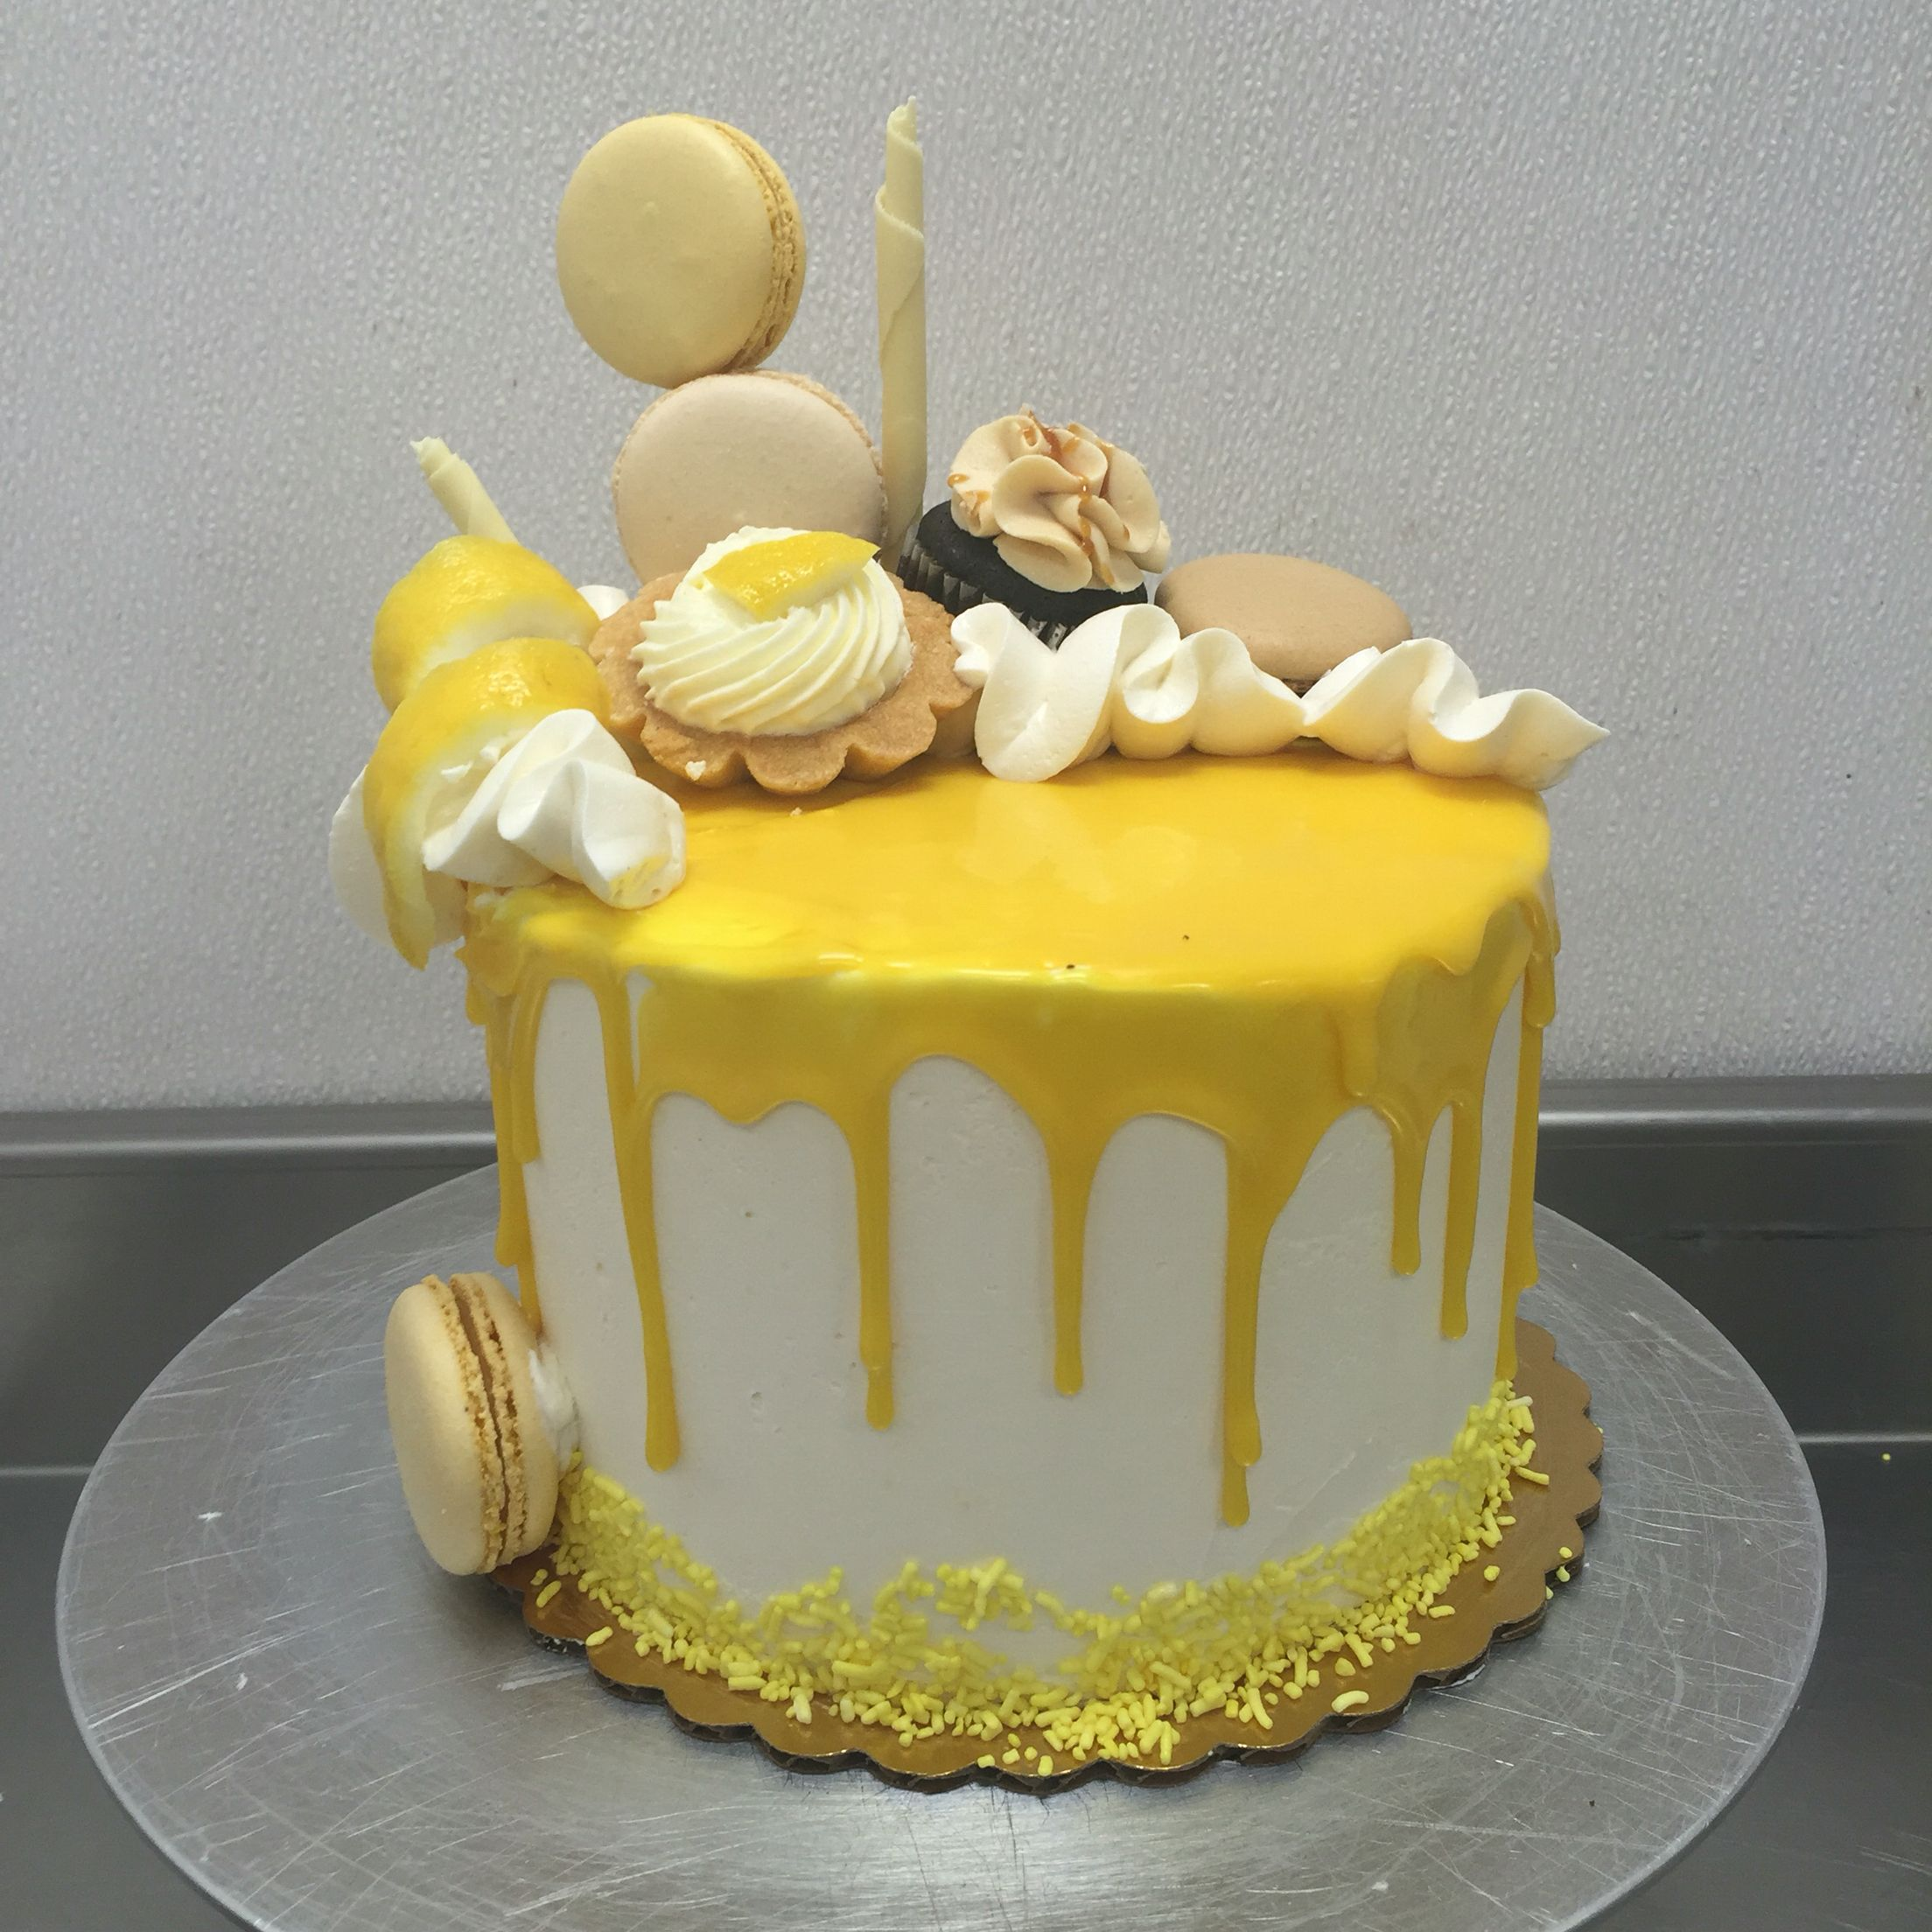 How To Make A Drip Cake To Wow The Party Lemon Birthday Cakes